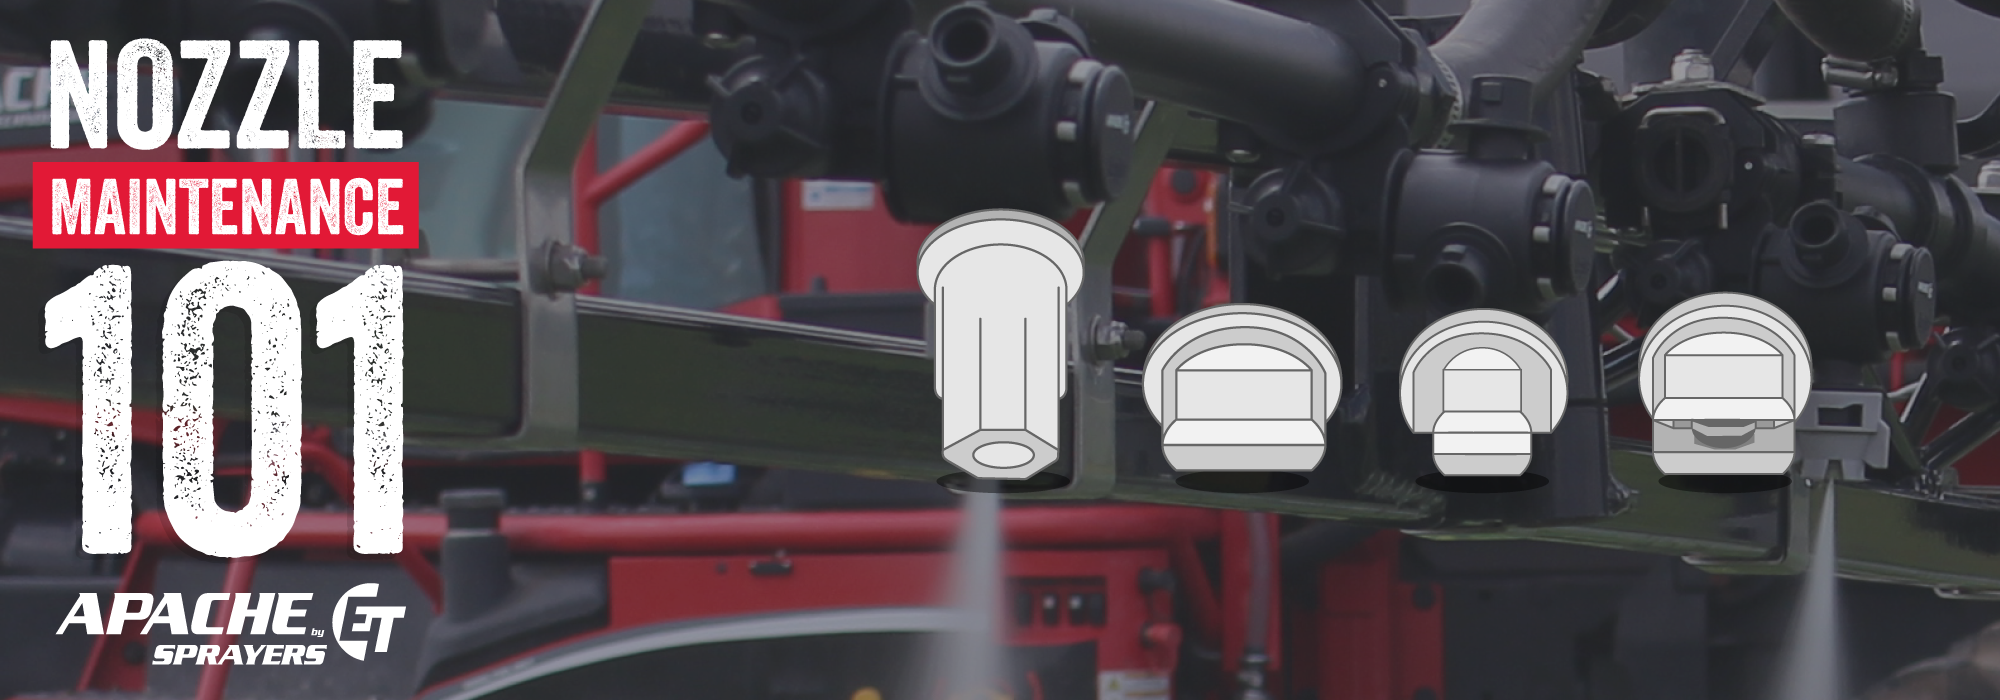 Solutions To Sprayer Nozzle Issues Before You Have Them Apache Sprayers Self Propelled Ag Sprayers